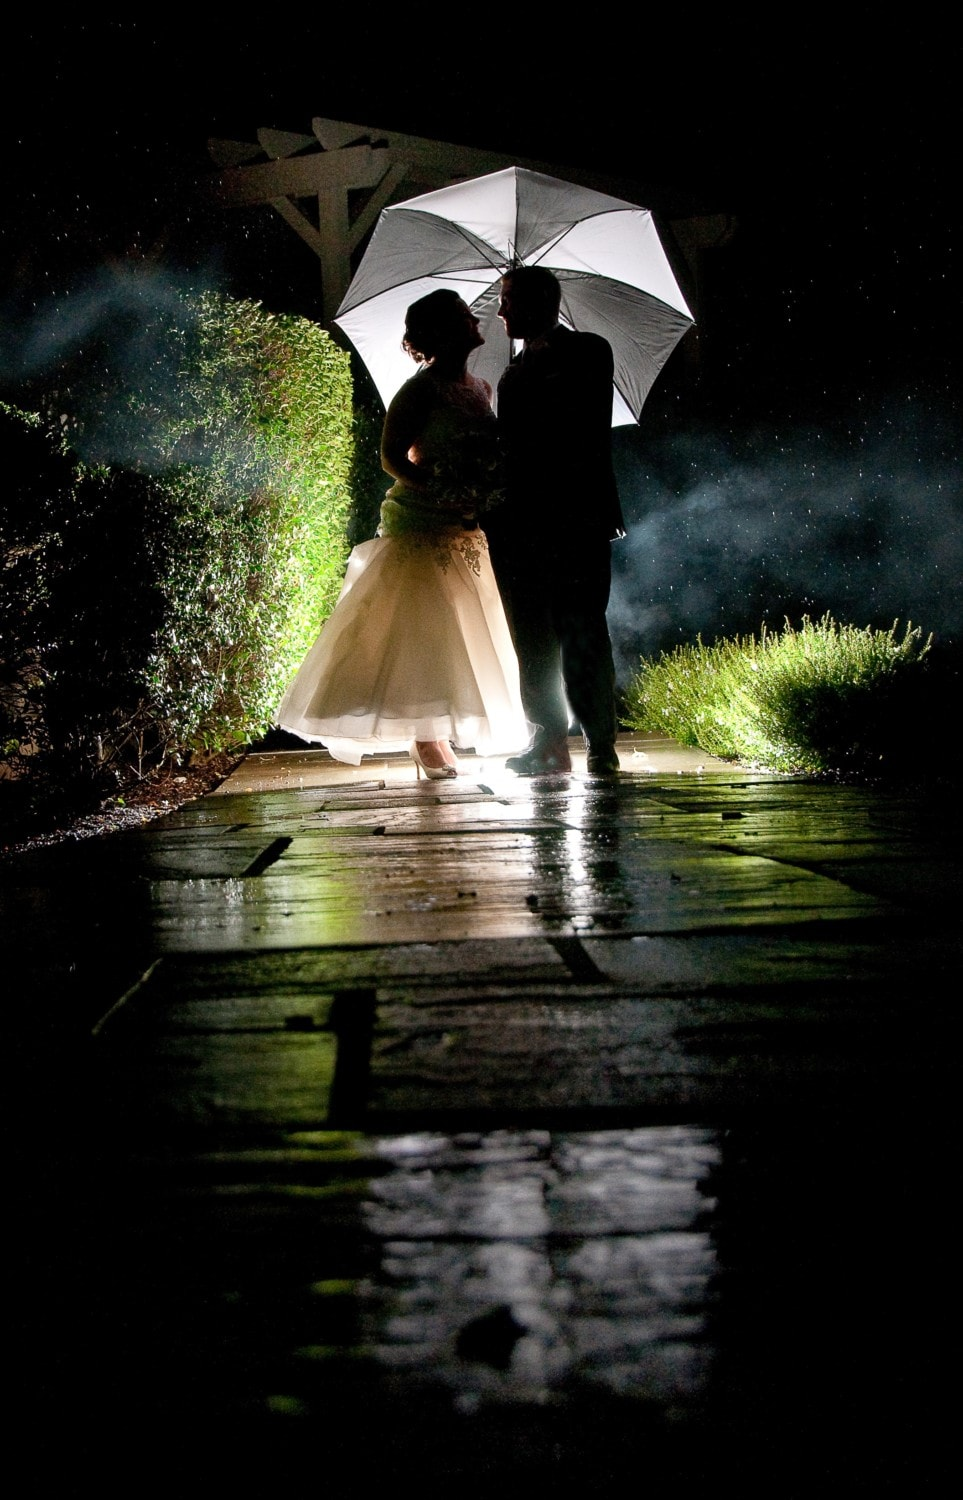 man and wife silhouettes with umbrella